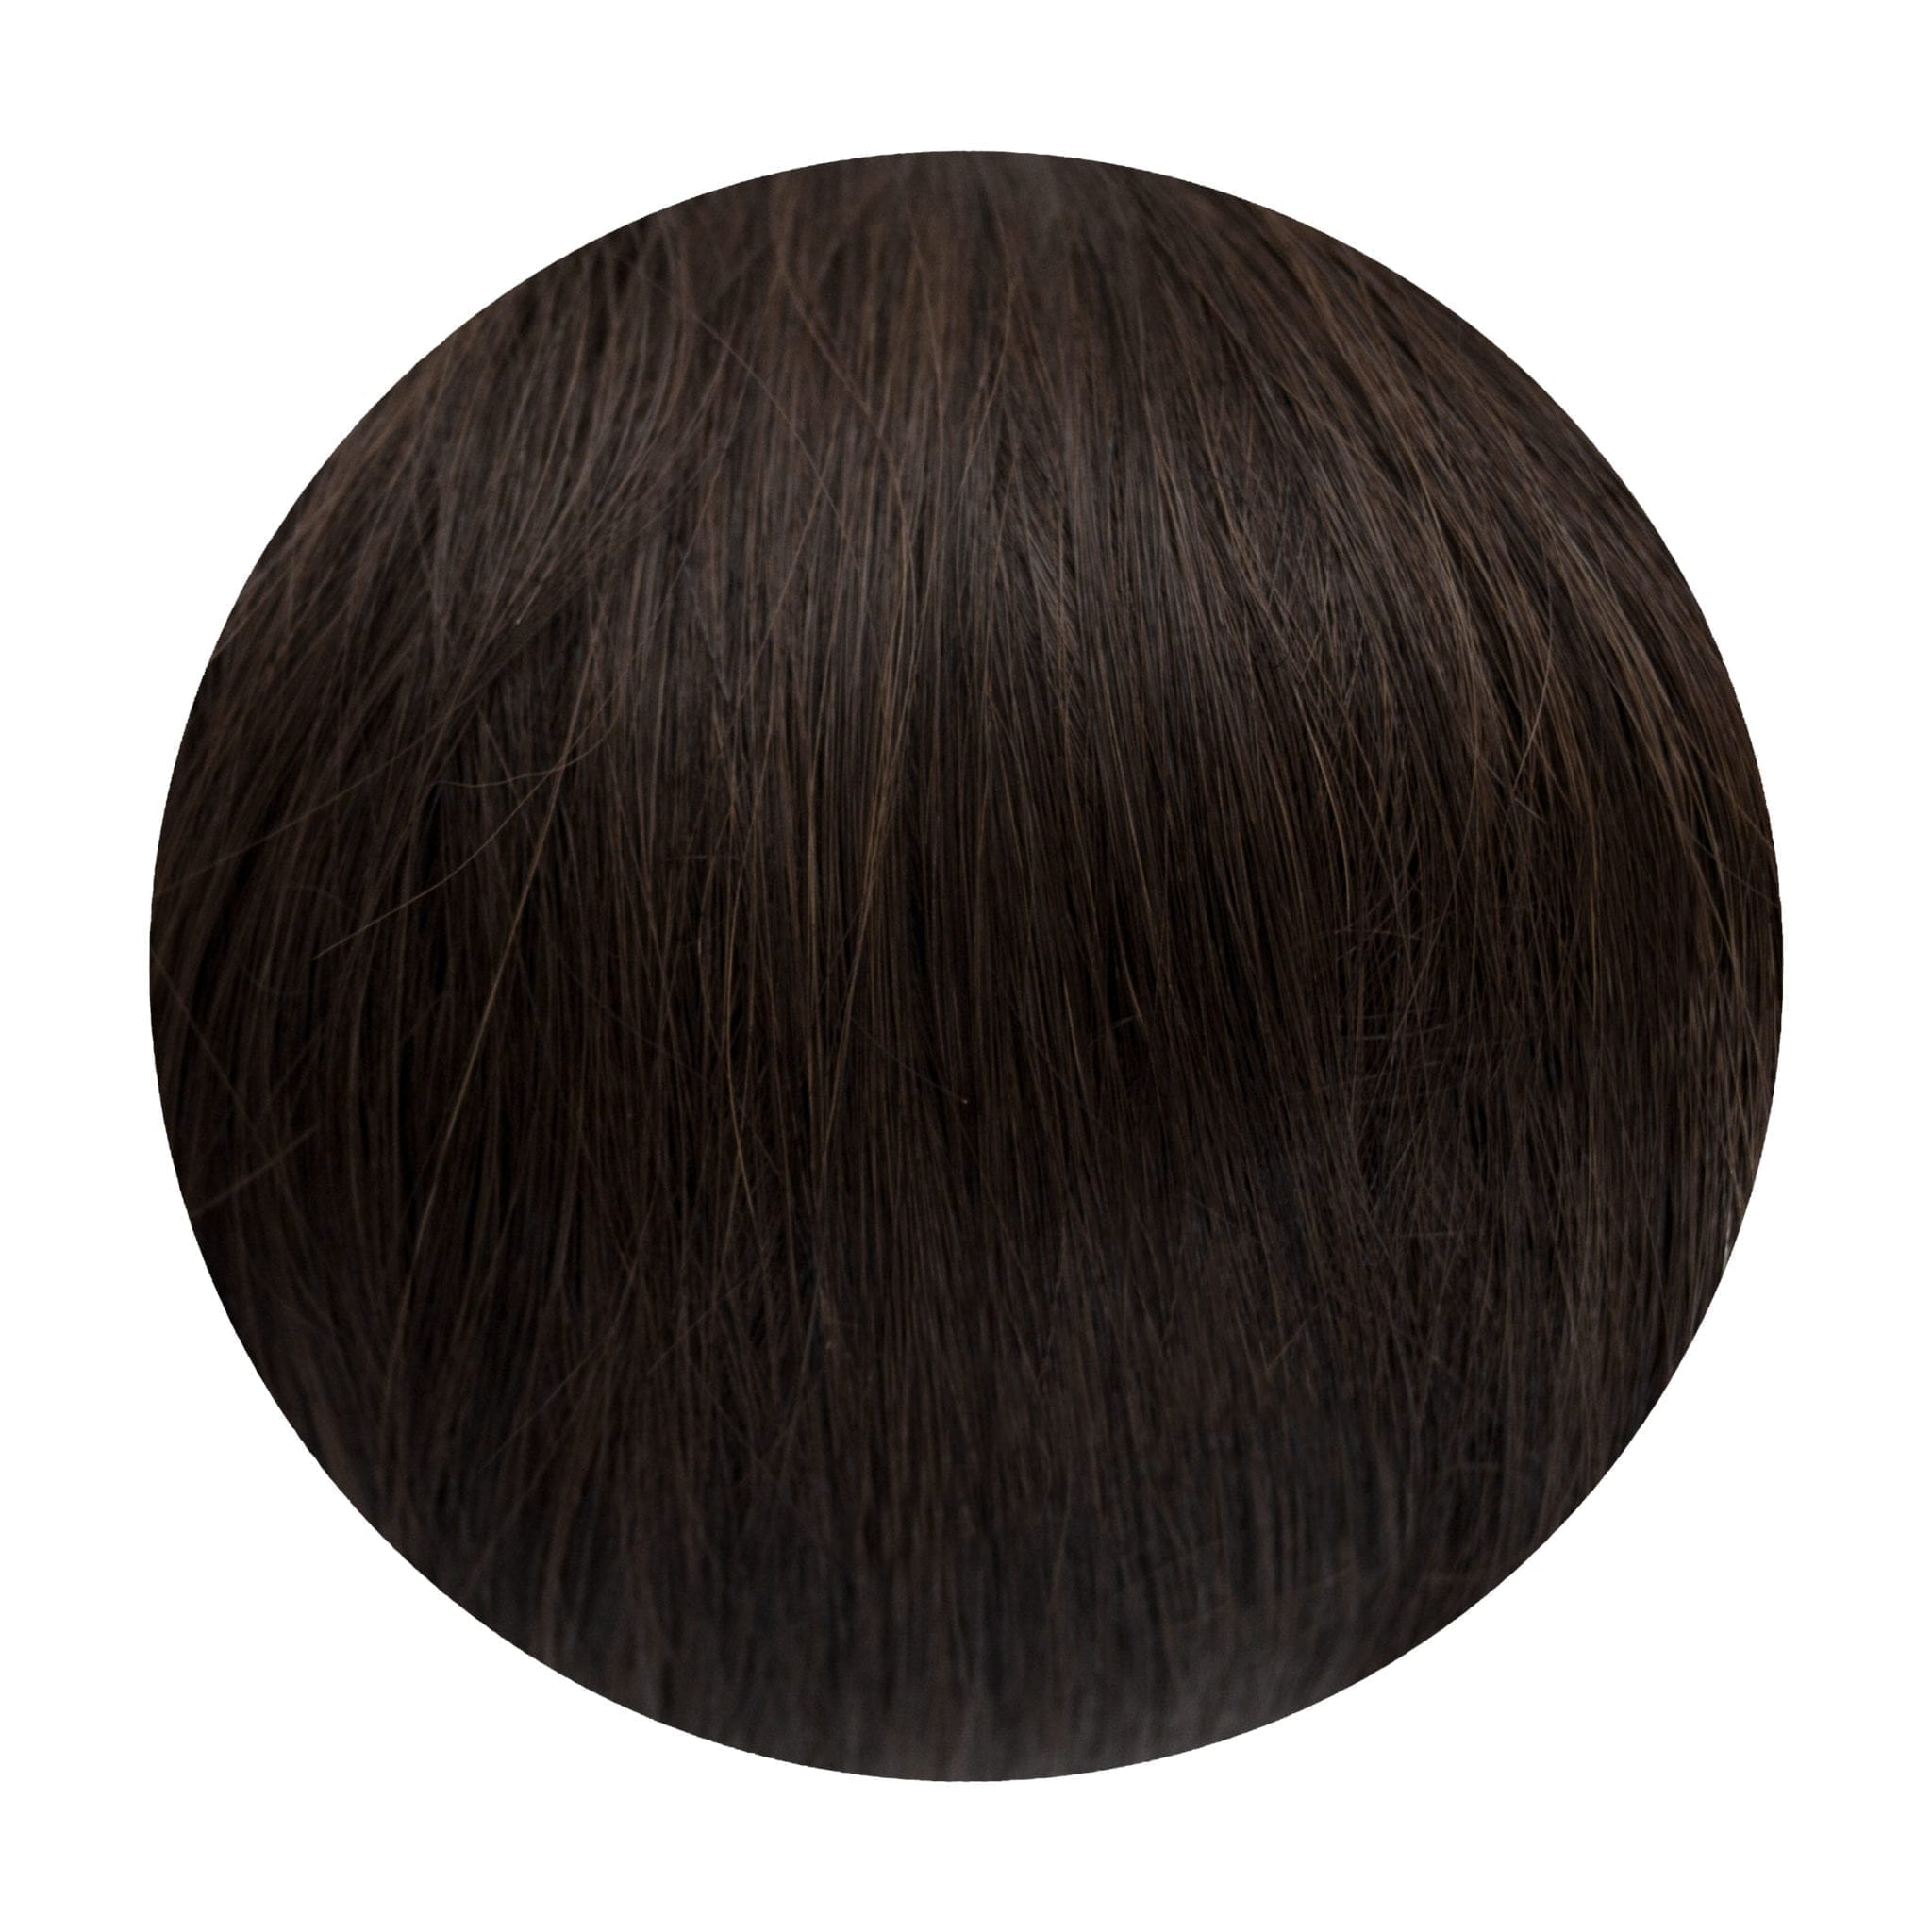 Caviar Natural Wave Tape Hair Extensions Ultimate 21.5-22 Inches